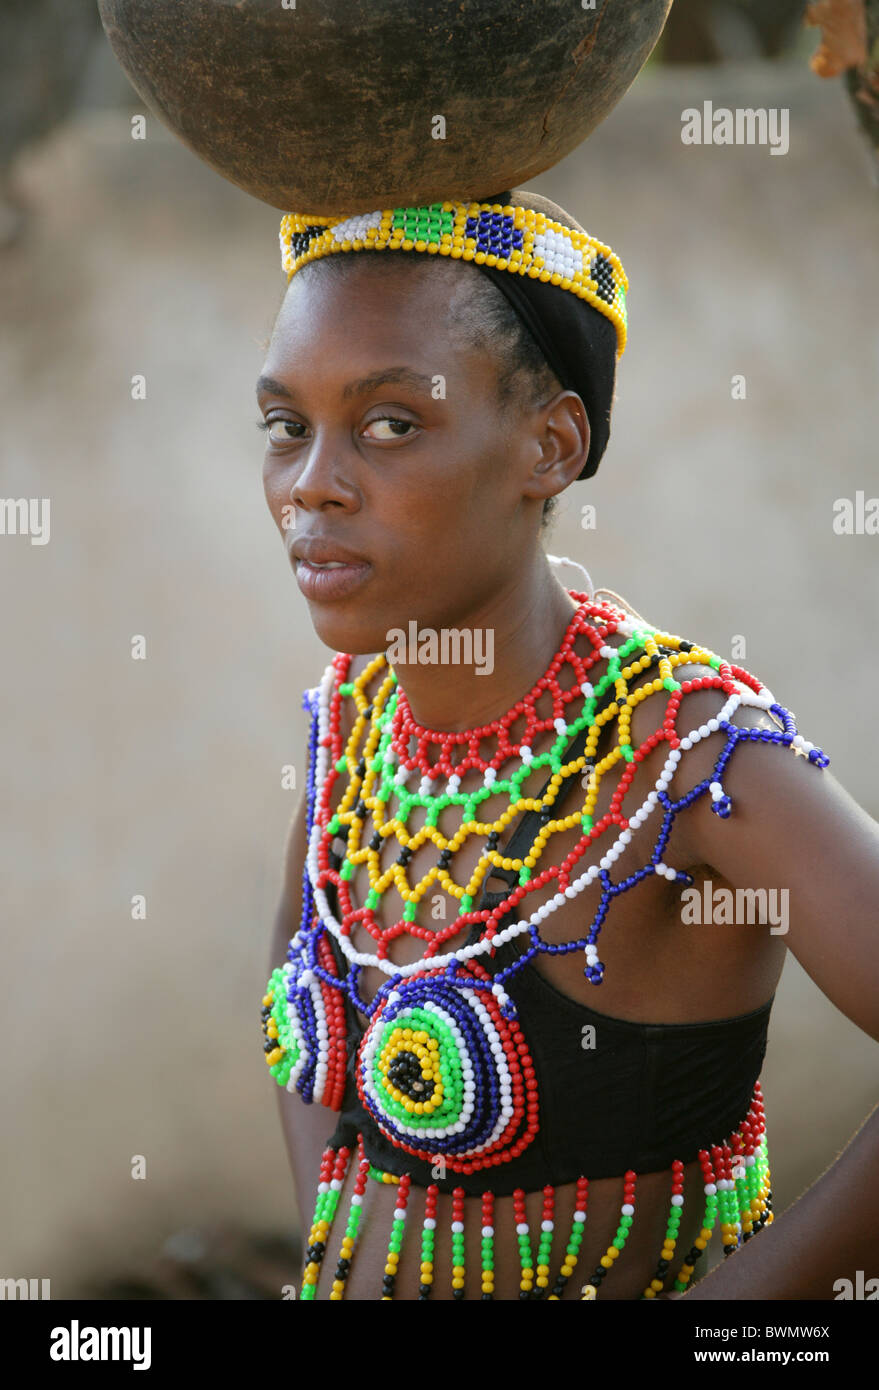 Pretty Zulu Woman With Beads Stock Photo - Download Image